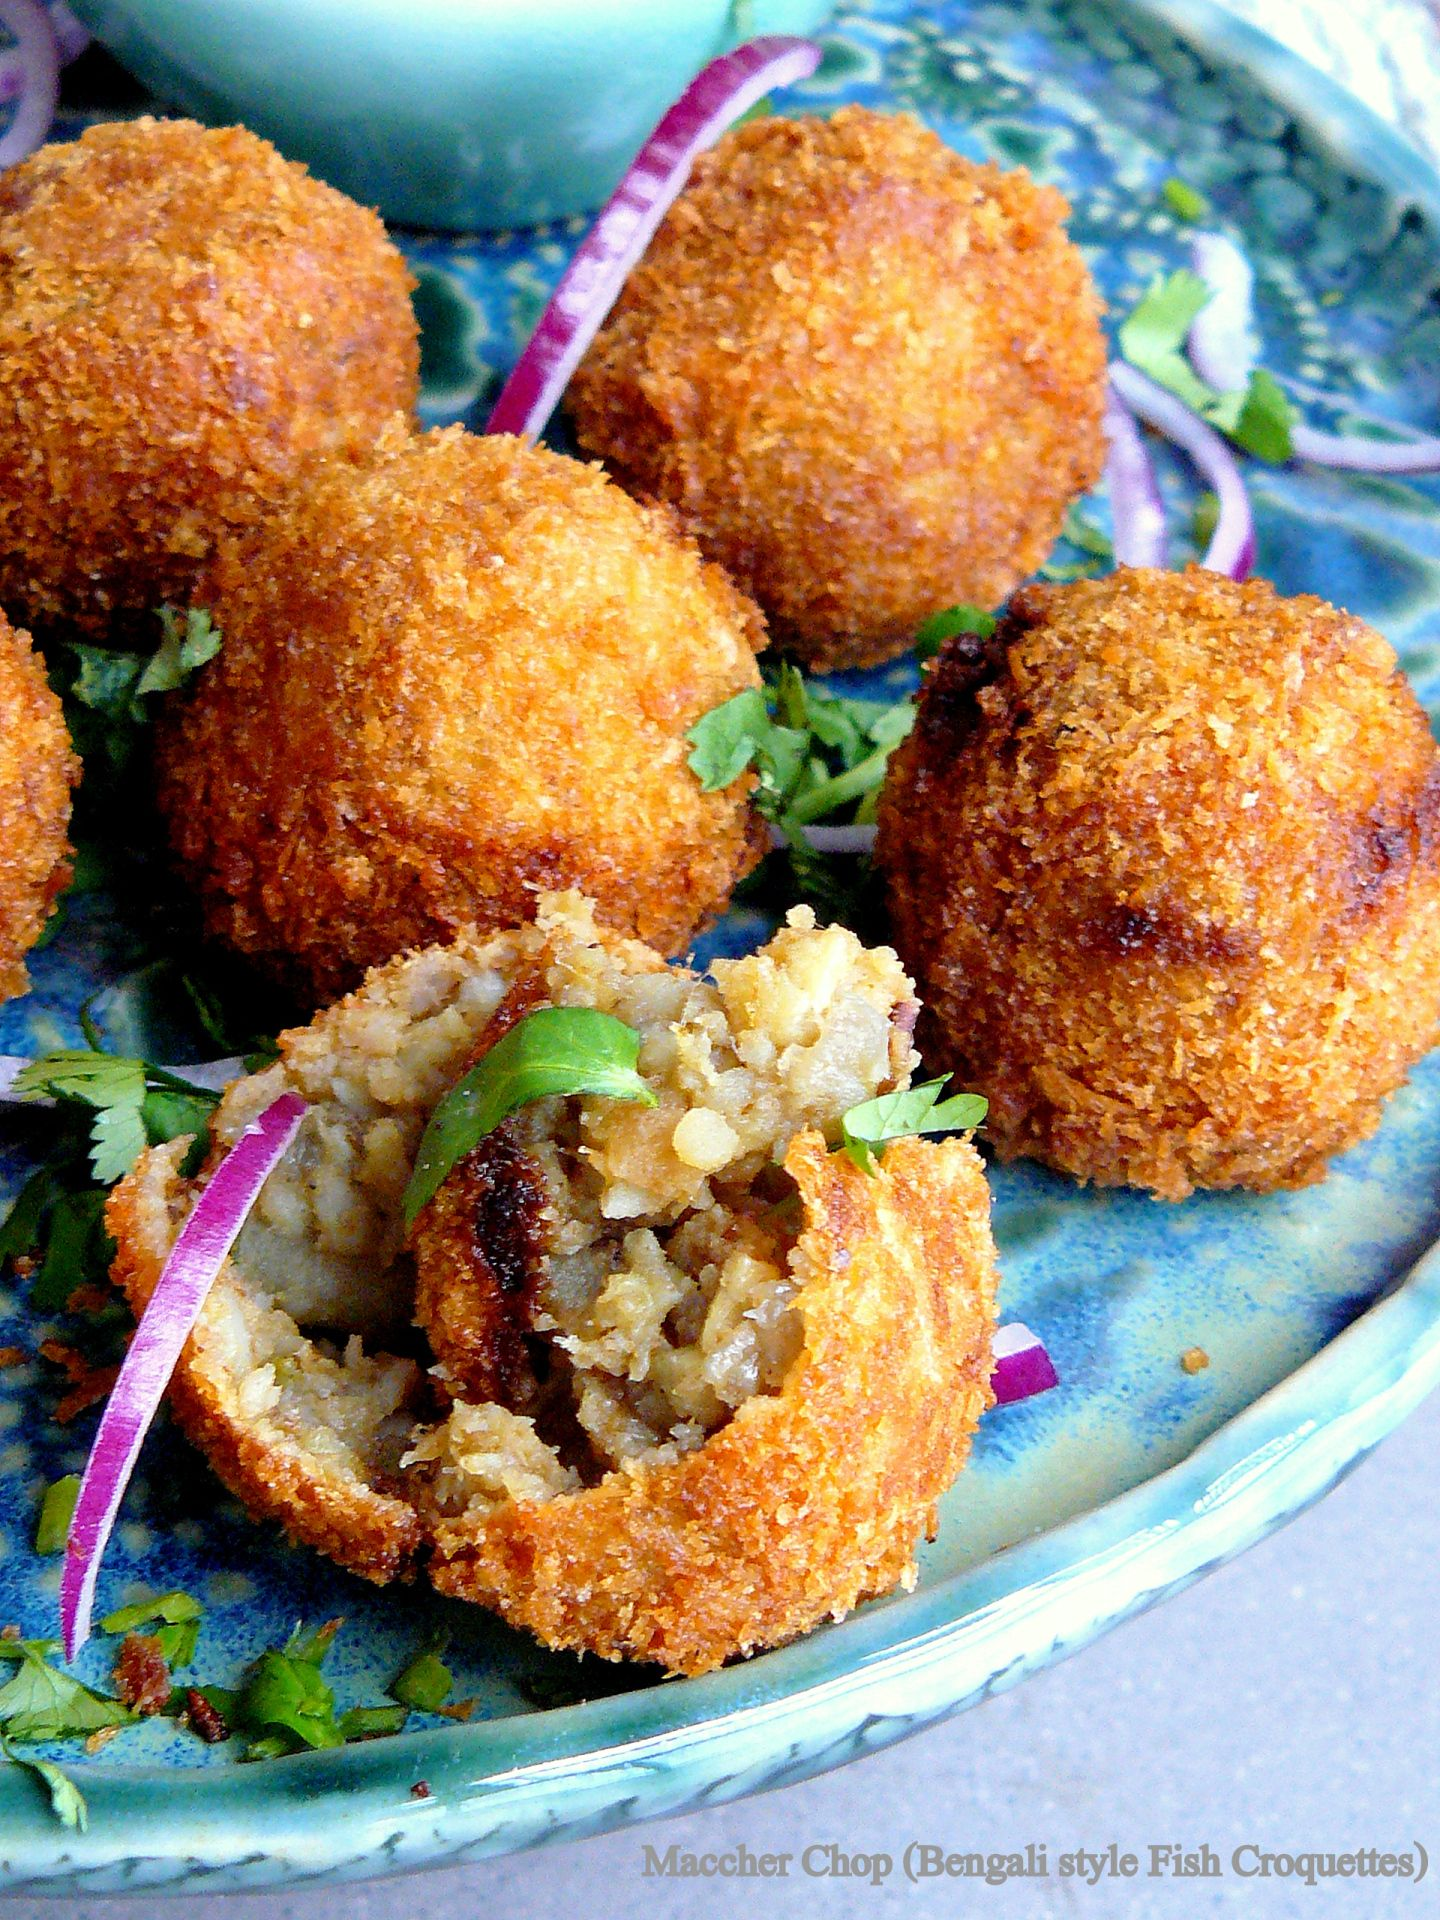 Kidspot #Voicesof2015 Experience + a recipe for Maccher Chop (Bengali style Fish Croquettes) – The Spice Adventuress